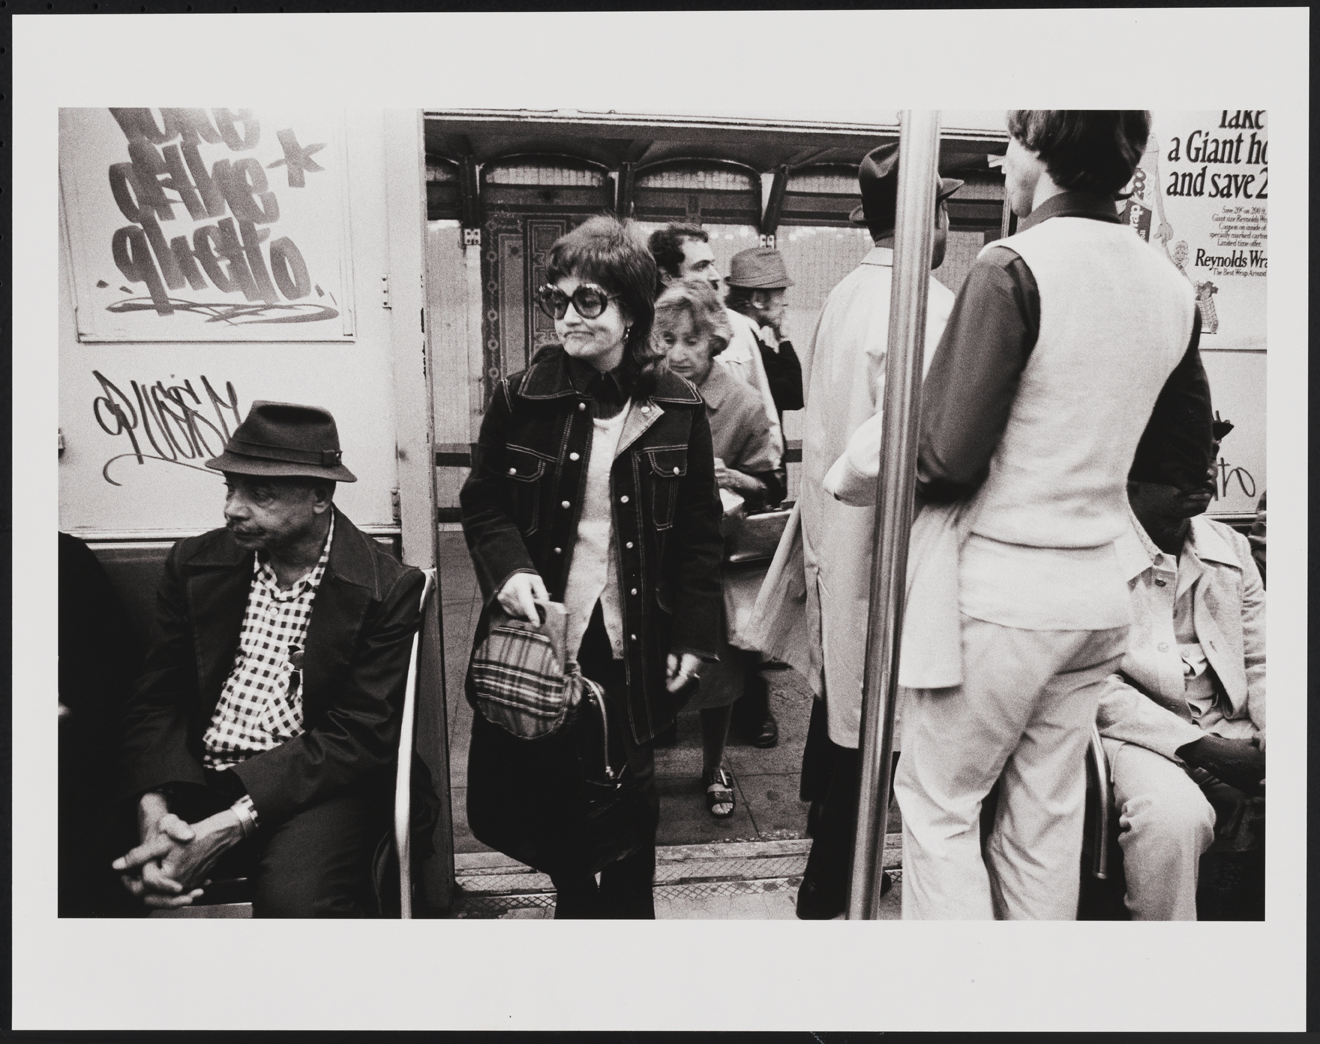 Leland Bobbé, Subway [Voice of the Ghetto], 1974. Archival pigment print. Gift of the photographer. 2016.10.7.